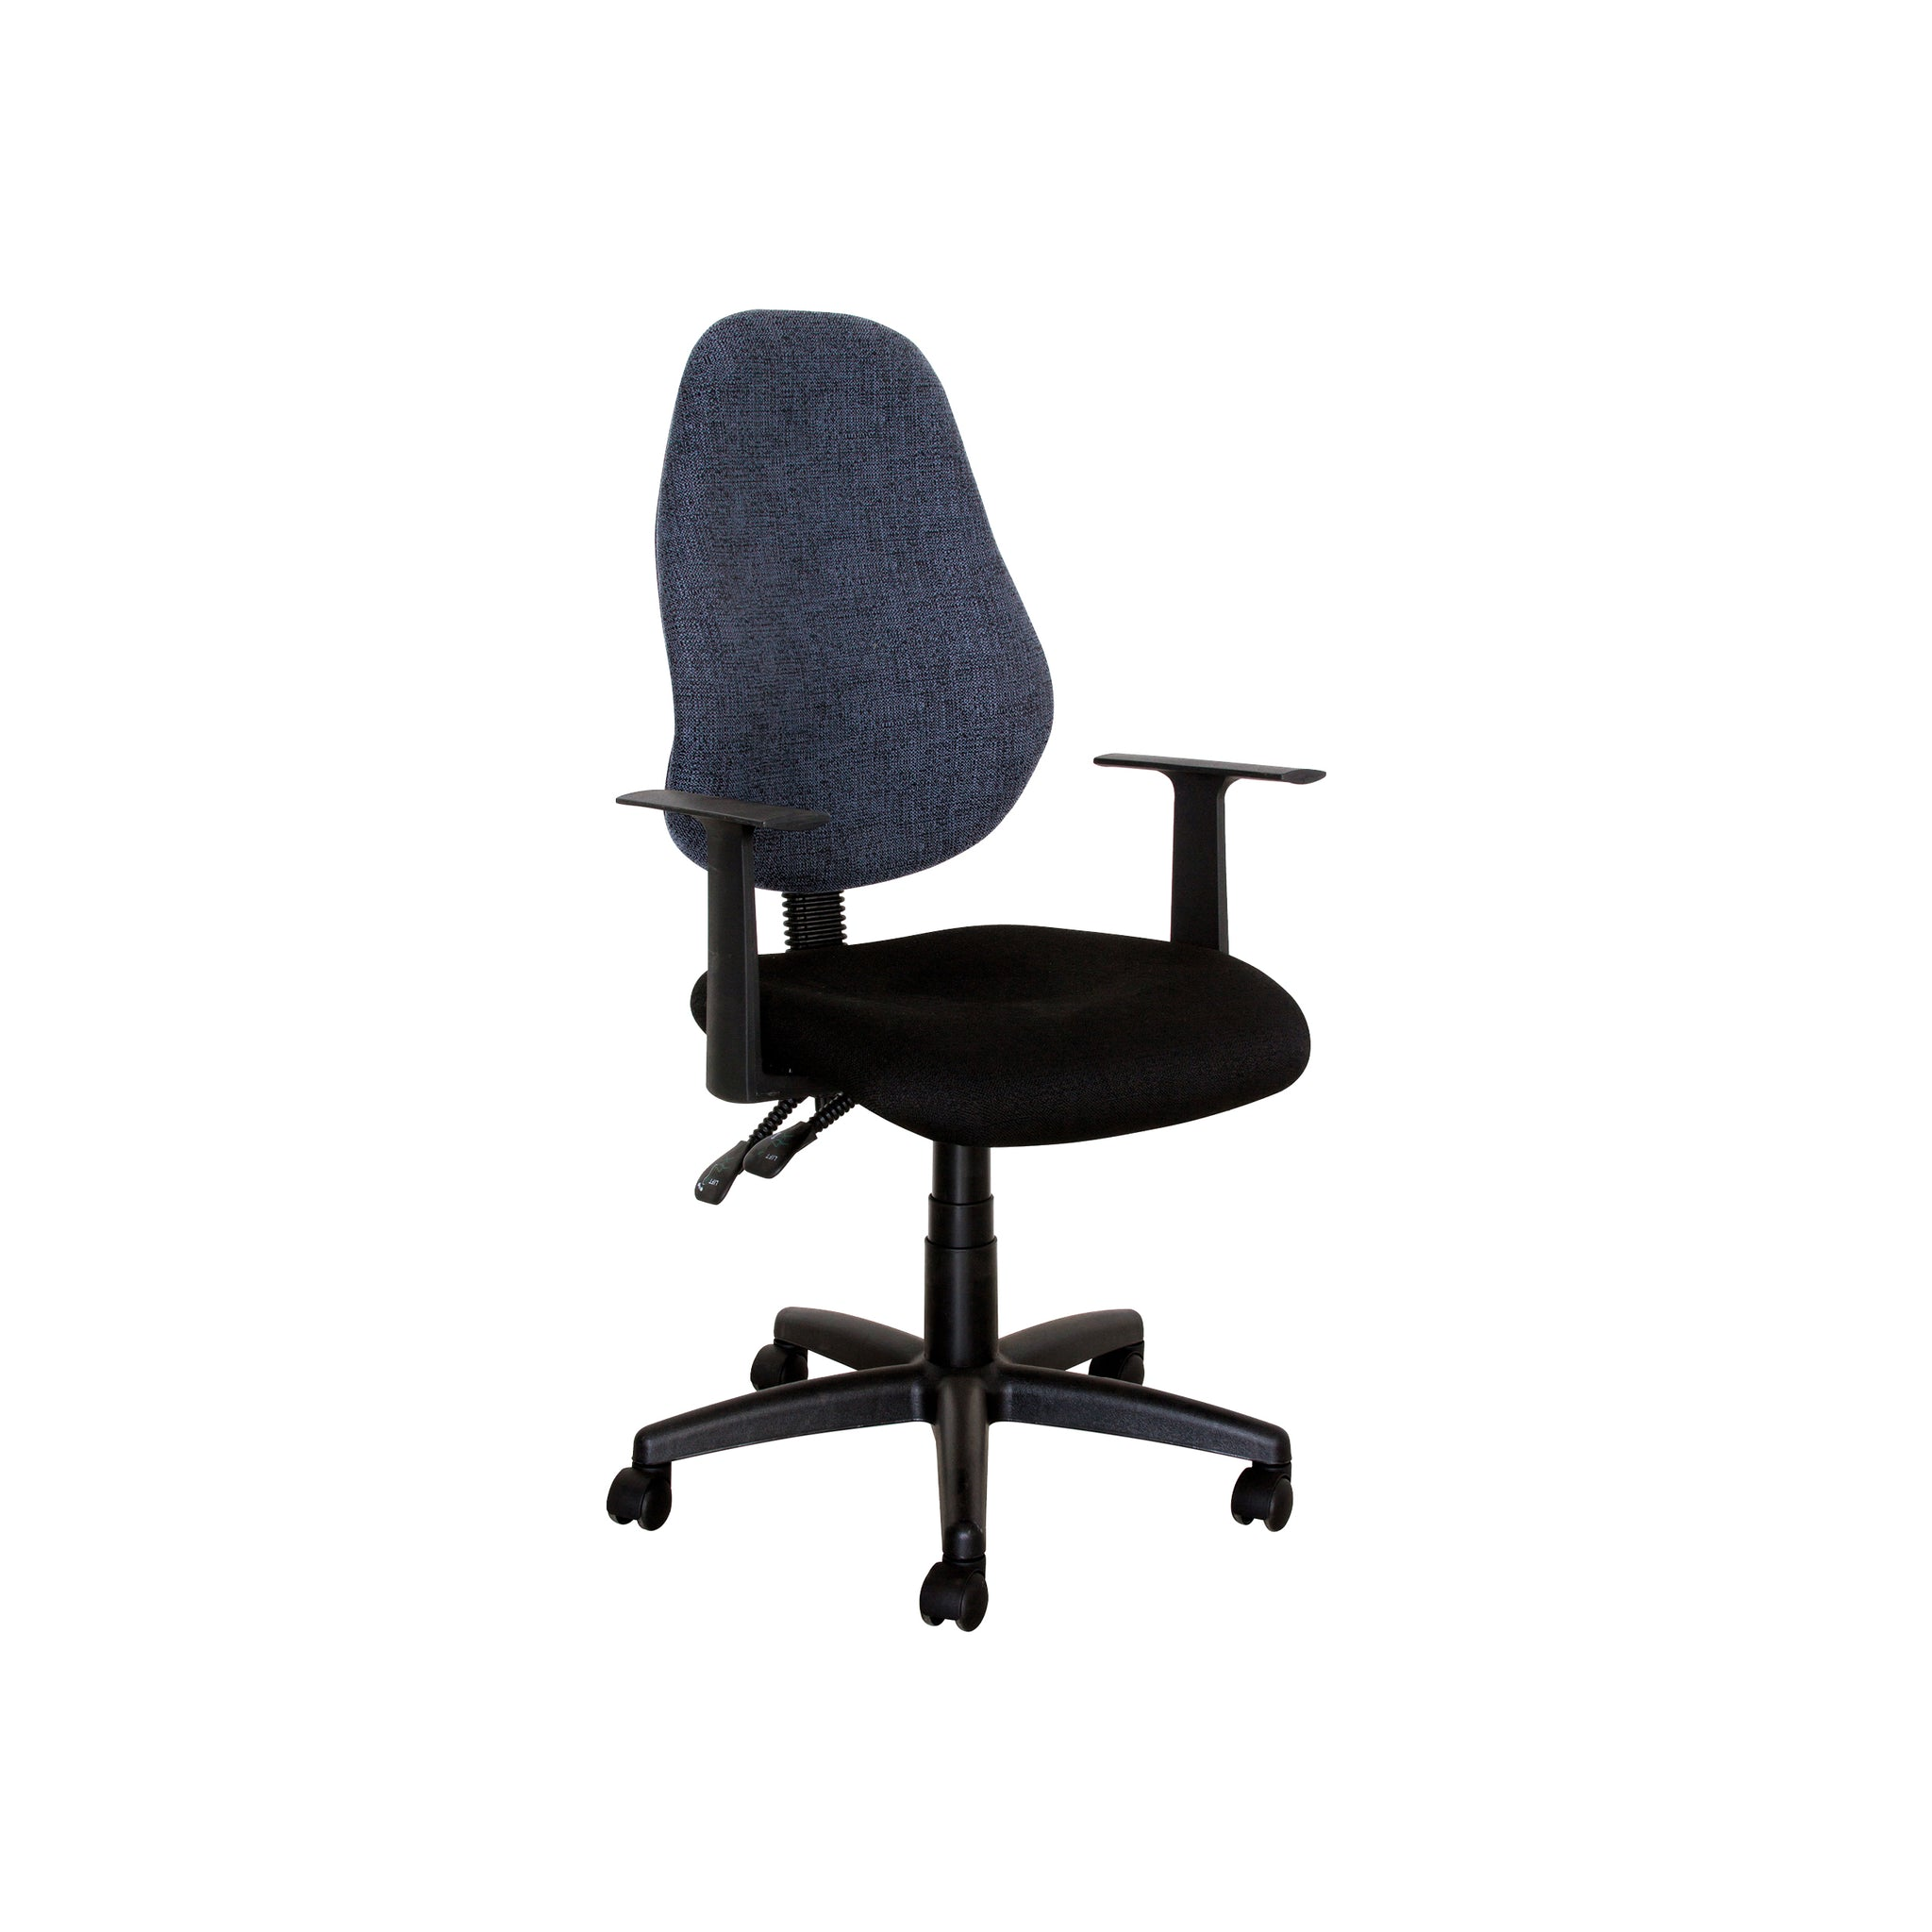 Hedcor Lucea operator with arm office chair